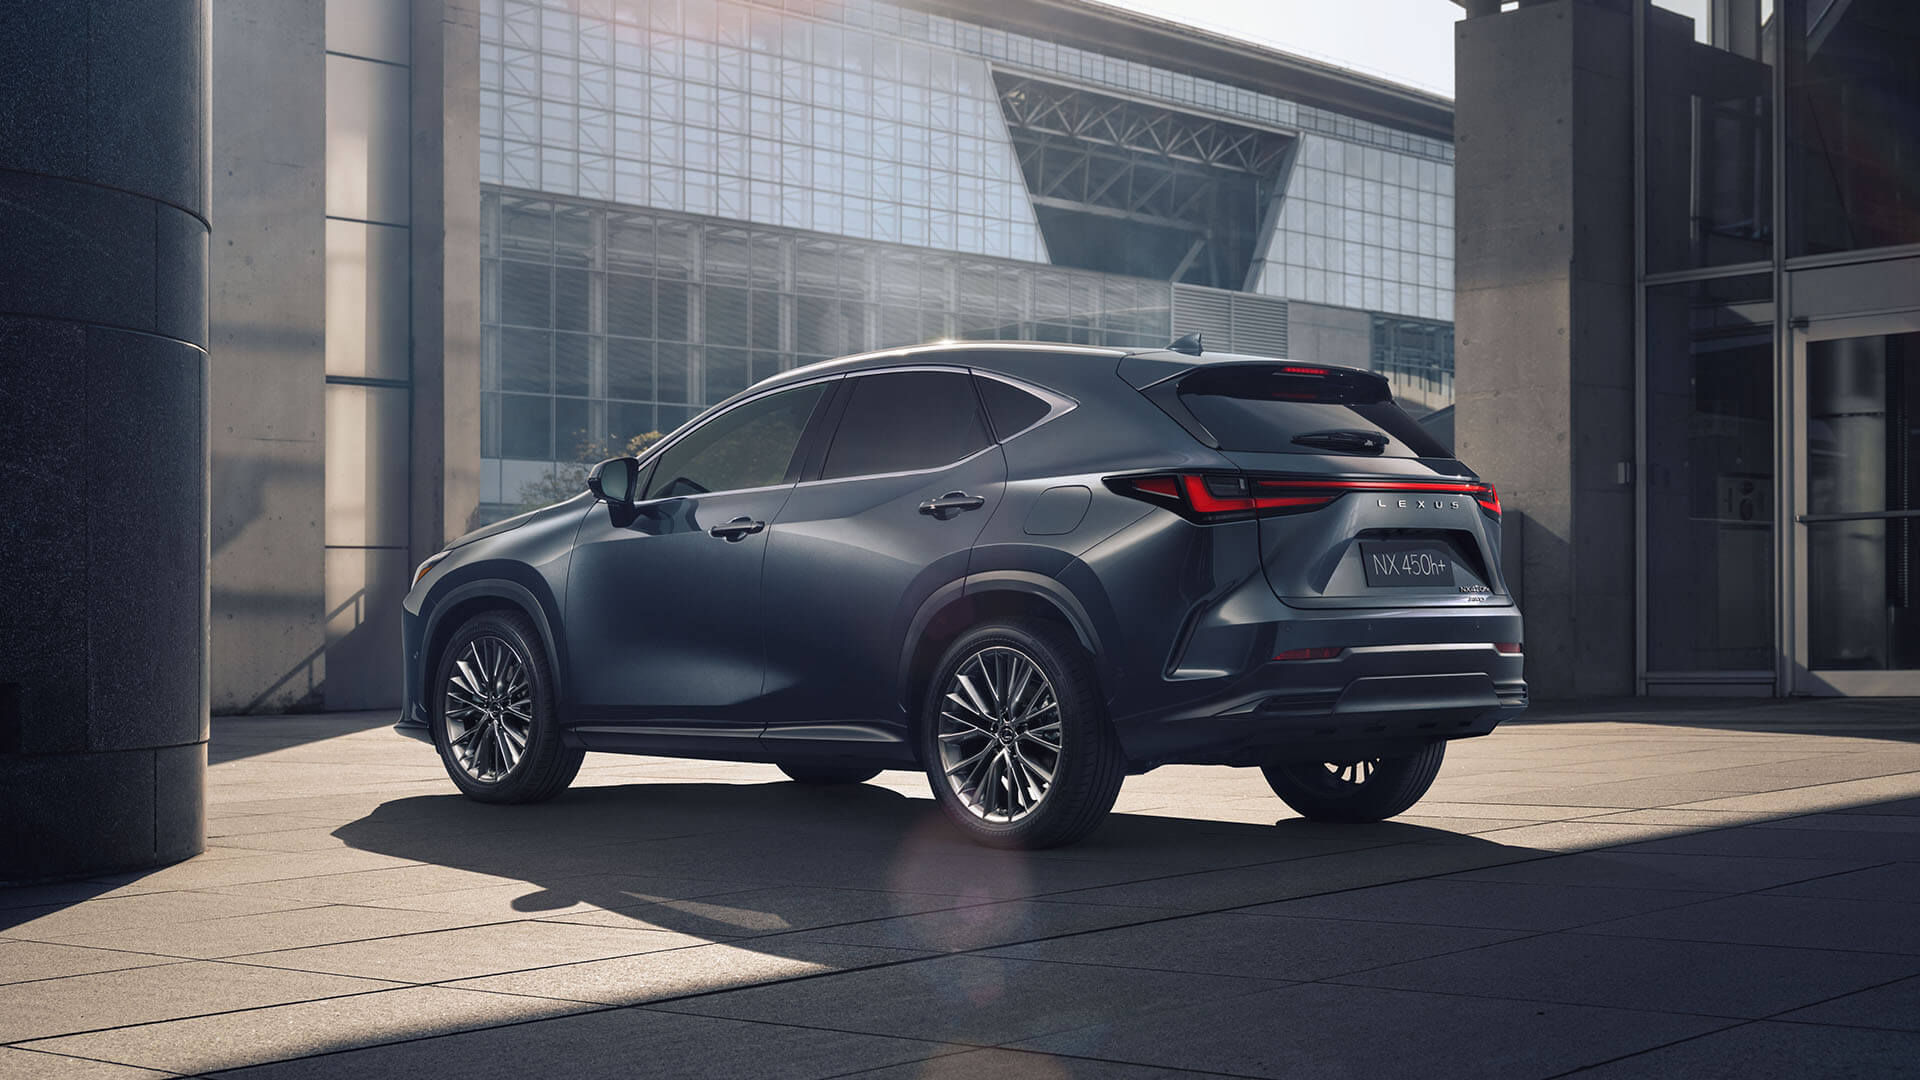 2021 lexus nx experience exterior front lithium ion battery technology